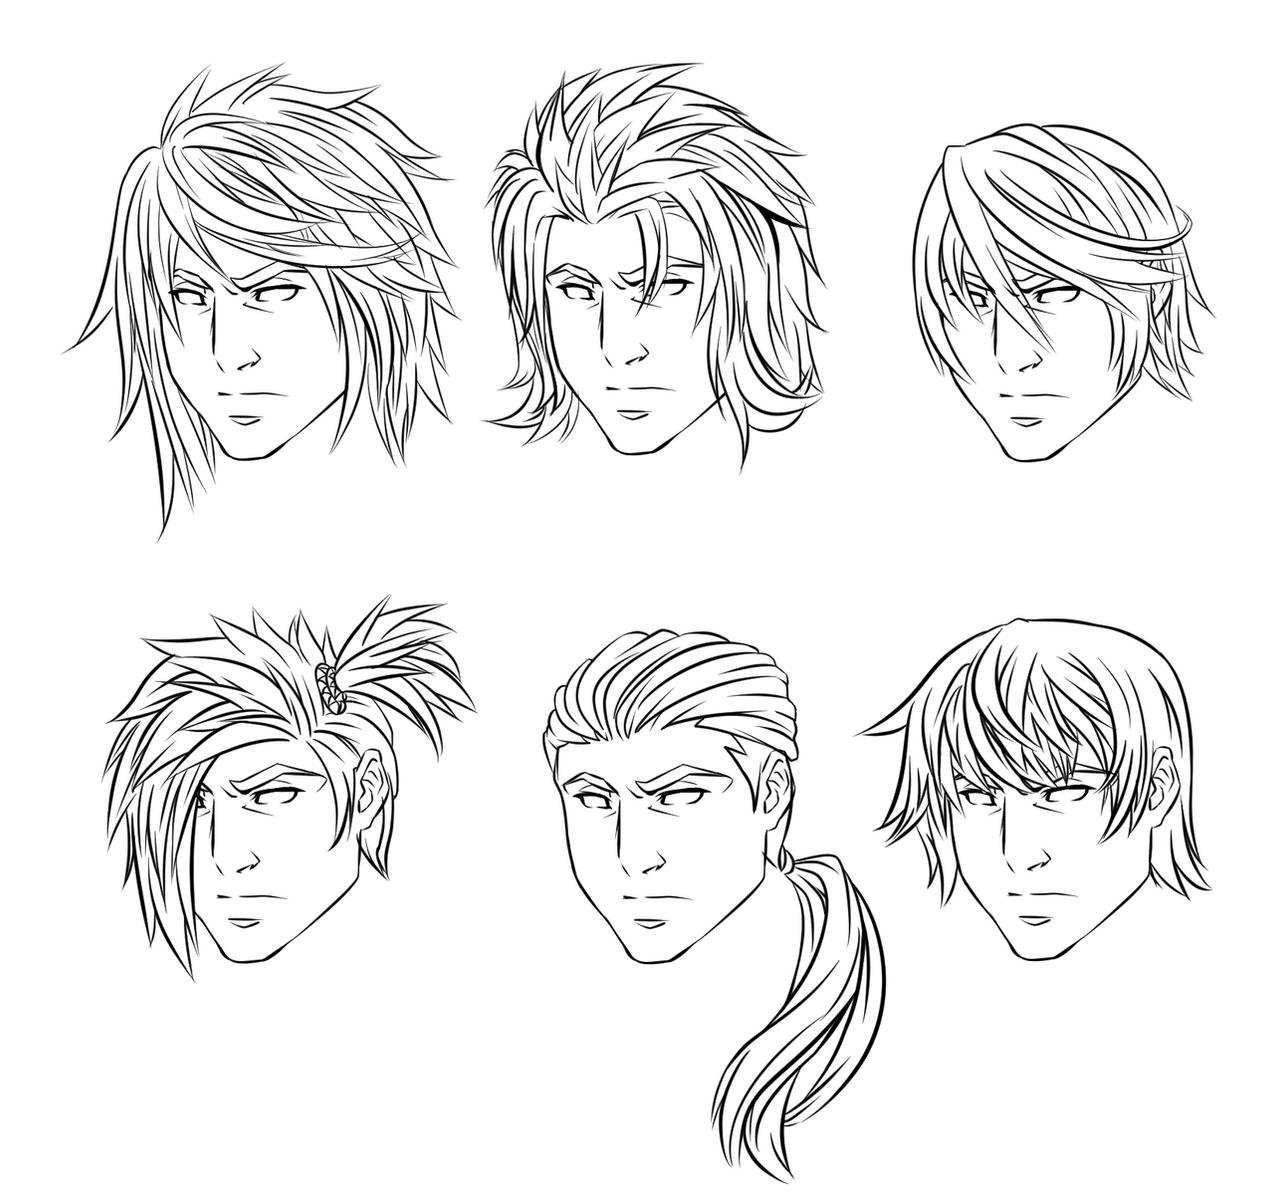 Anime male hairstyles by crimsoncypher on deviantart anime male hairstyles by crimsoncypher anime male hairstyles by crimsoncypher urmus Choice Image